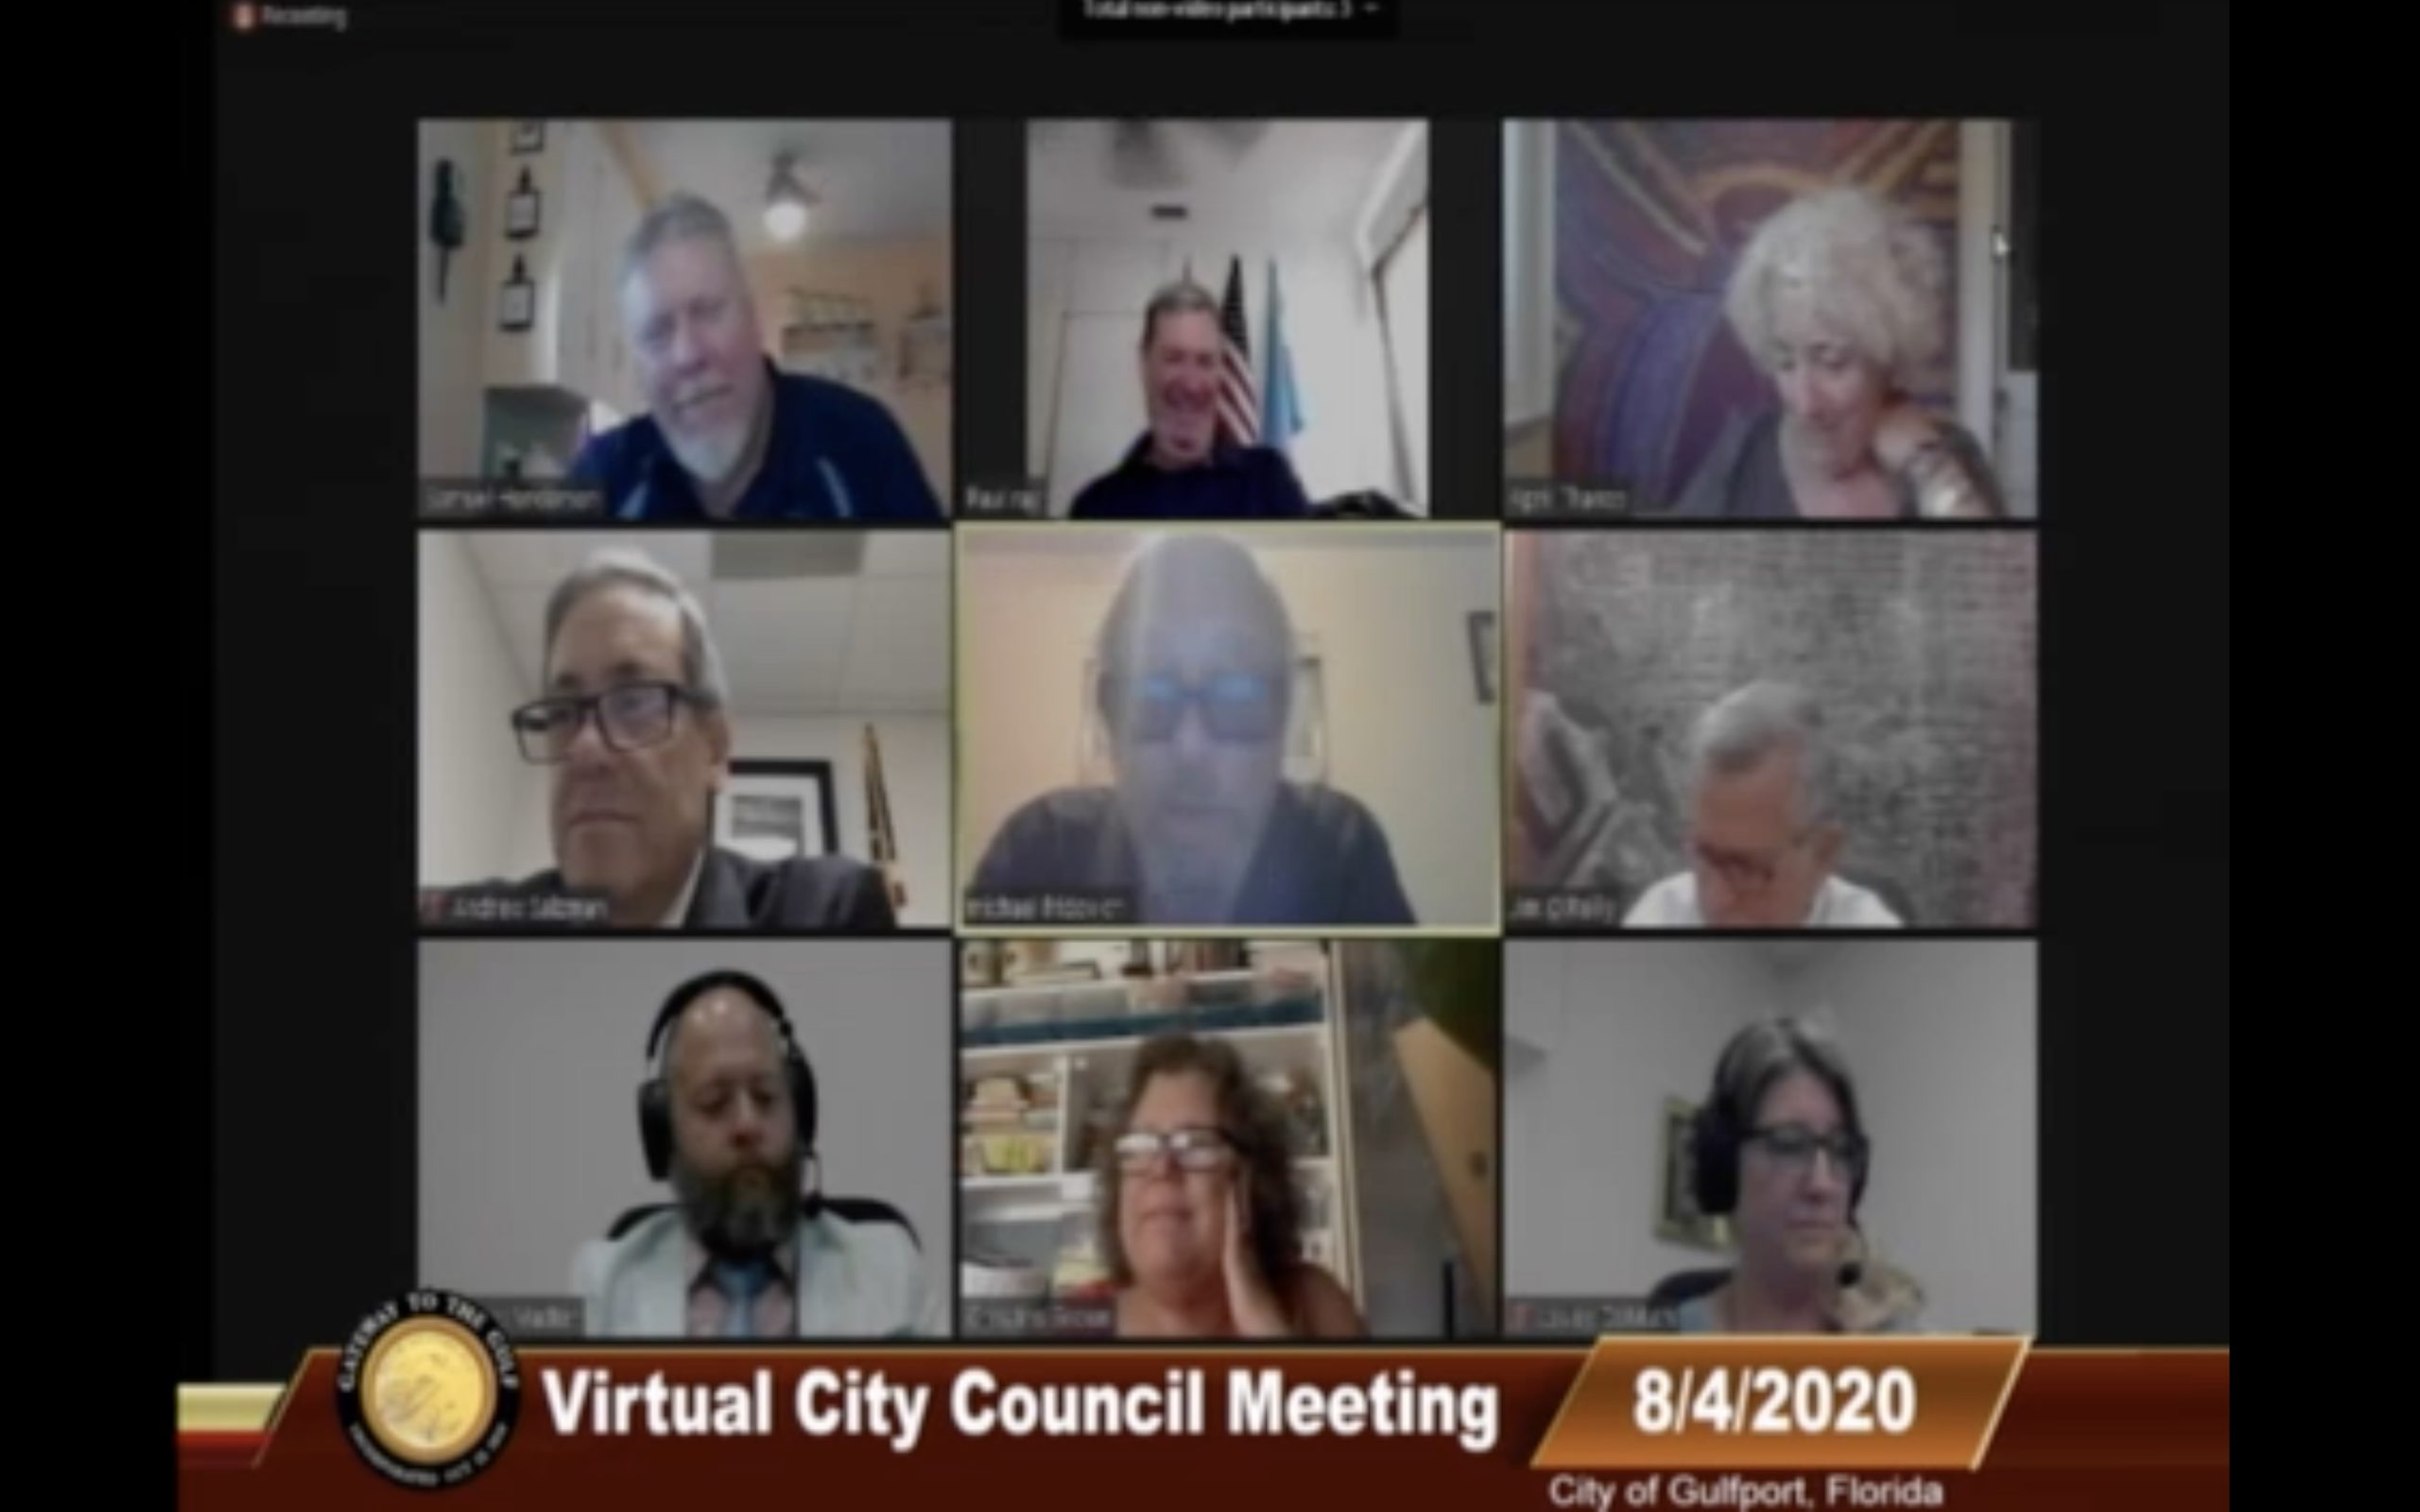 Screenshot from the Gulfport Florida City Council virtual meeting Tuesday, August 4.